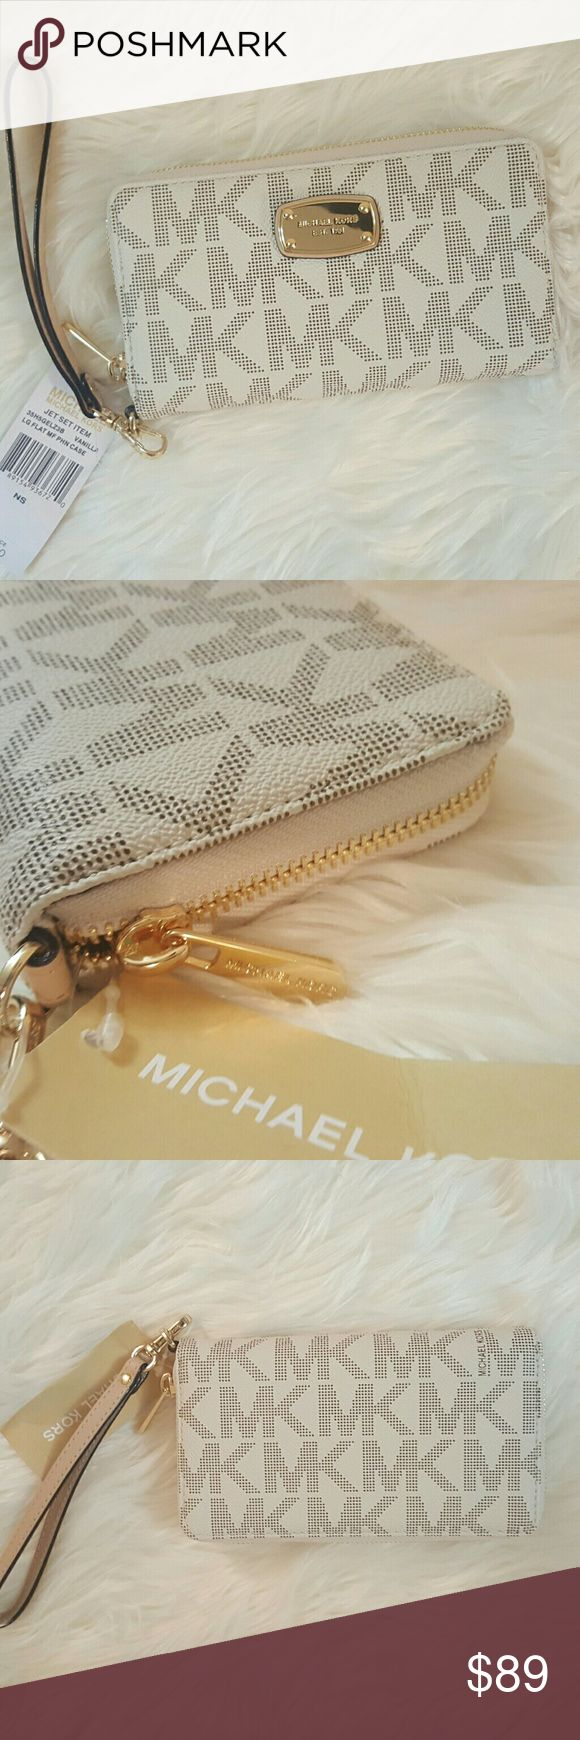 """NWT* Michael Kors Jet Set Travel Wallet * NWT* Michael Kors Jet Set Travel Wallet * Vanilla MK Signature Wallet * Multifunction Wristlet/Wallet*Approx. Dimensions:6 1/2"""" wide; 4"""" tall; 1'' deep Exterior: Zip around with a logo pull tab; Detachable leather wristlet strap*Interior: Inside is a fully lined interior; ID slot; Five interior credit card slots; Interior zip pocket, Bill compartments; Phone compartment; MK name embossed* Feel free to Inquire and ask Questions * Reasonable offers…"""